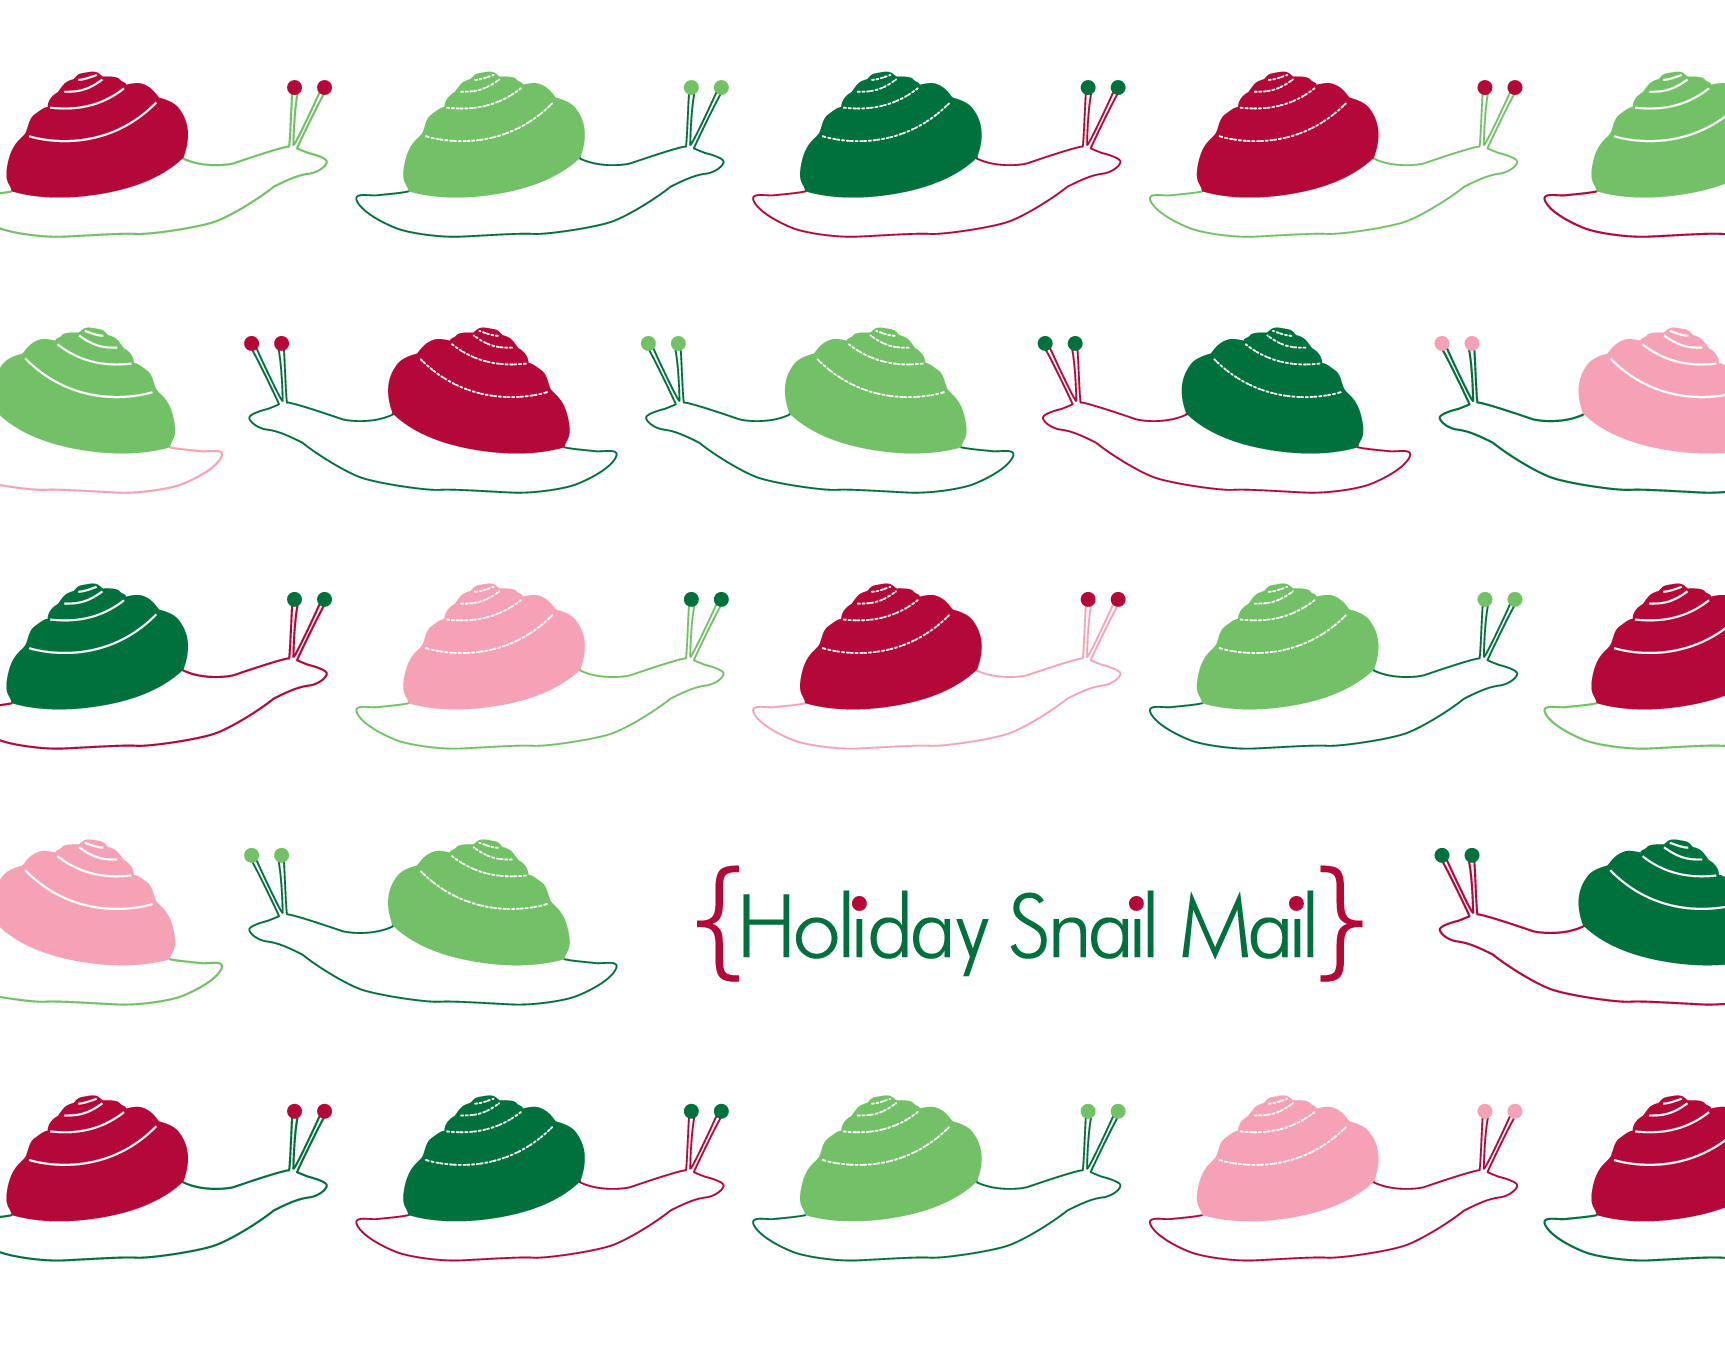 Holiday Snail Mail